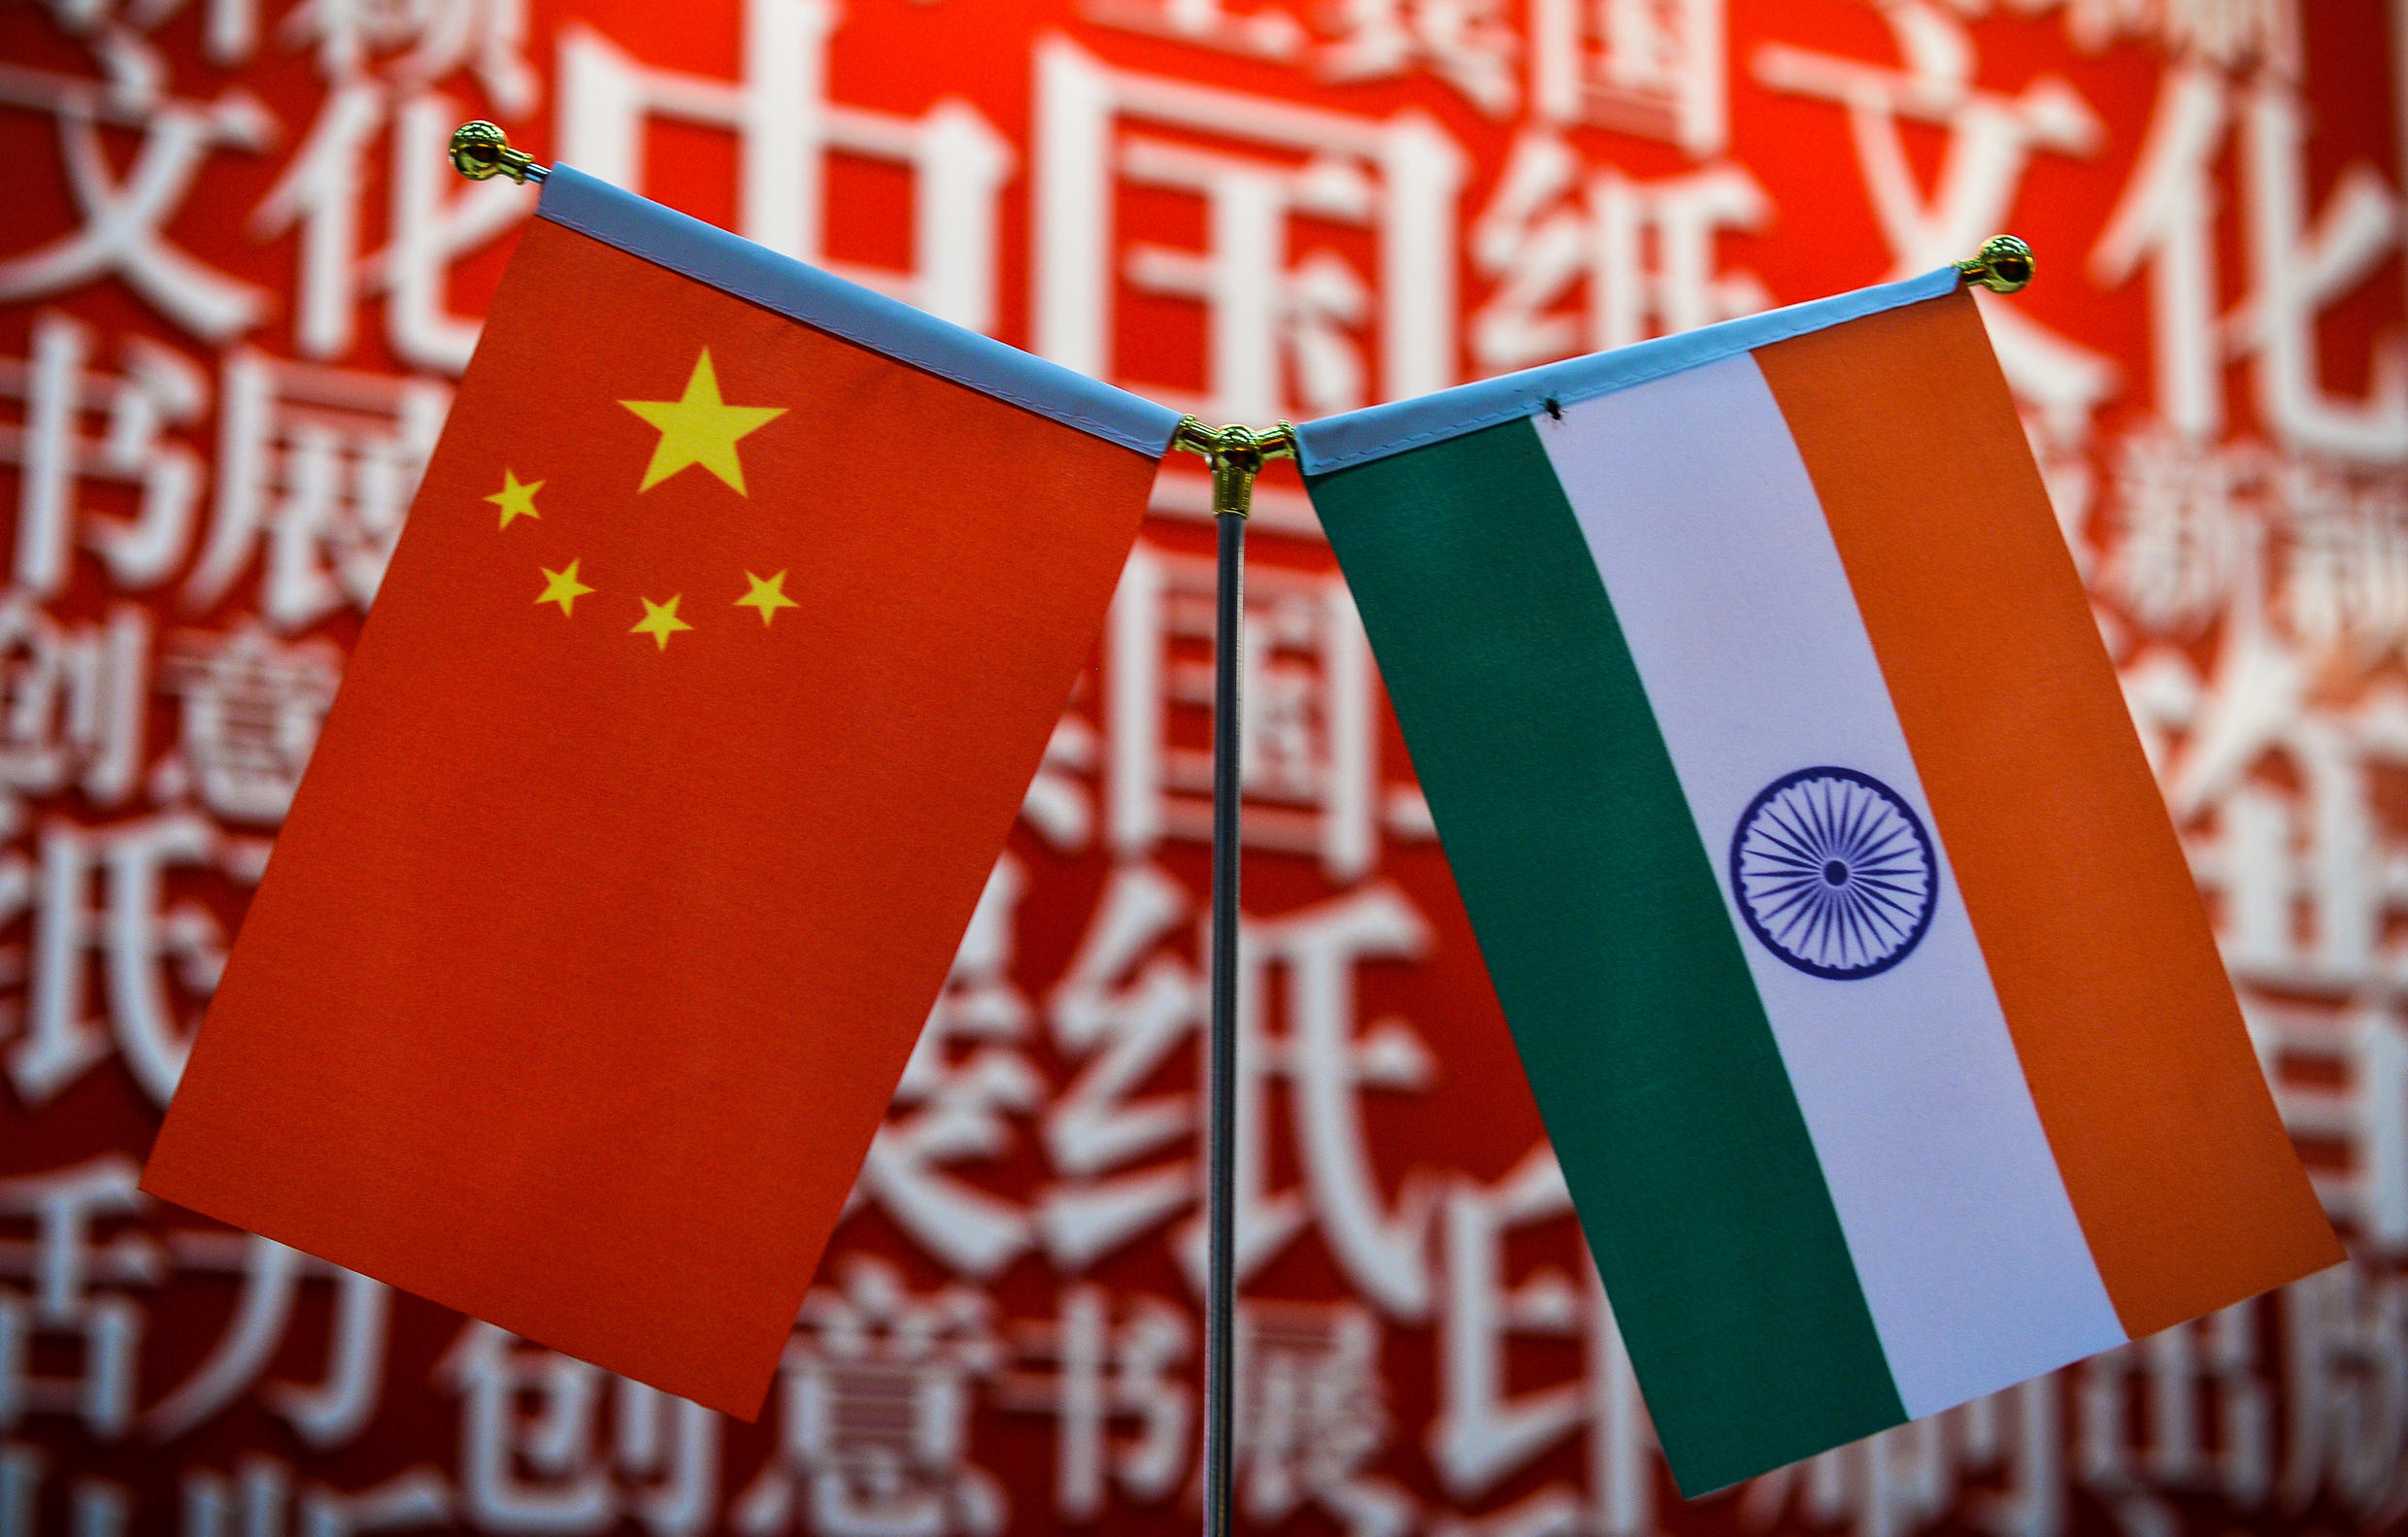 Tensions have been rising on the border between India and China in recent weeks.